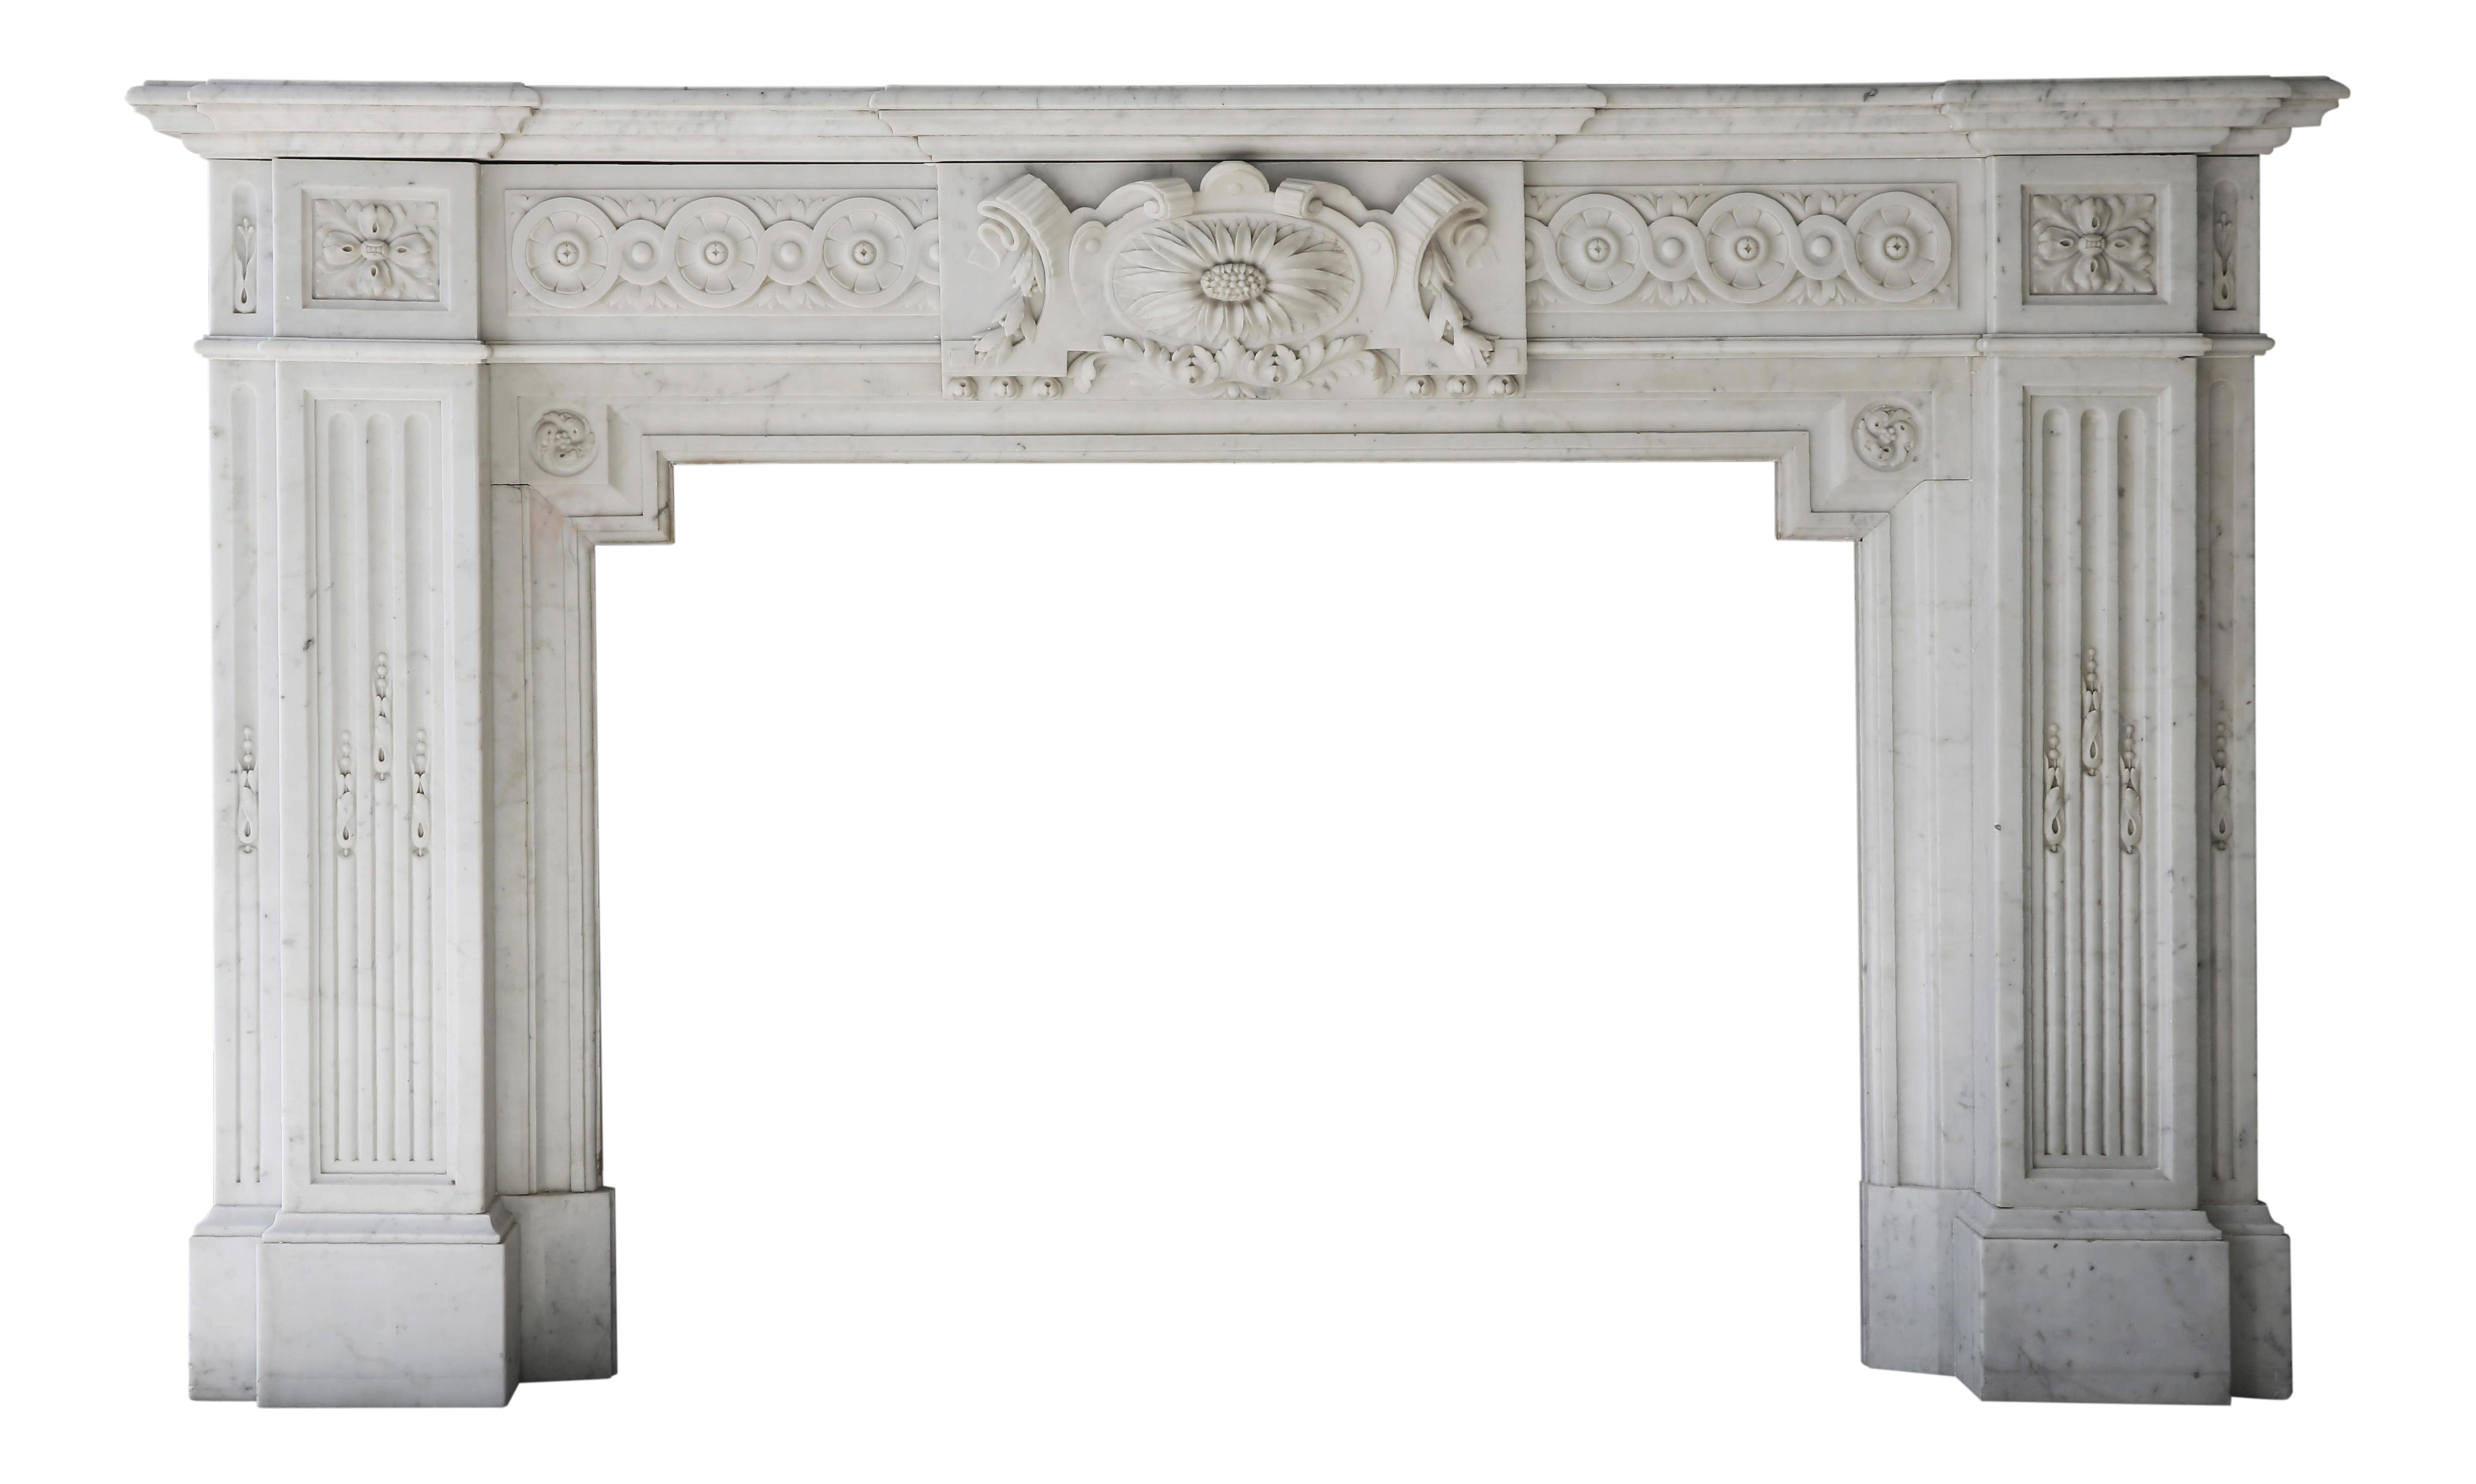 neoclassical style of architecture with egyptian elements egyptian revival 19th century antique fireplace of carrara marble in neoclassical style for sale designer architectural and garden elements for decaso